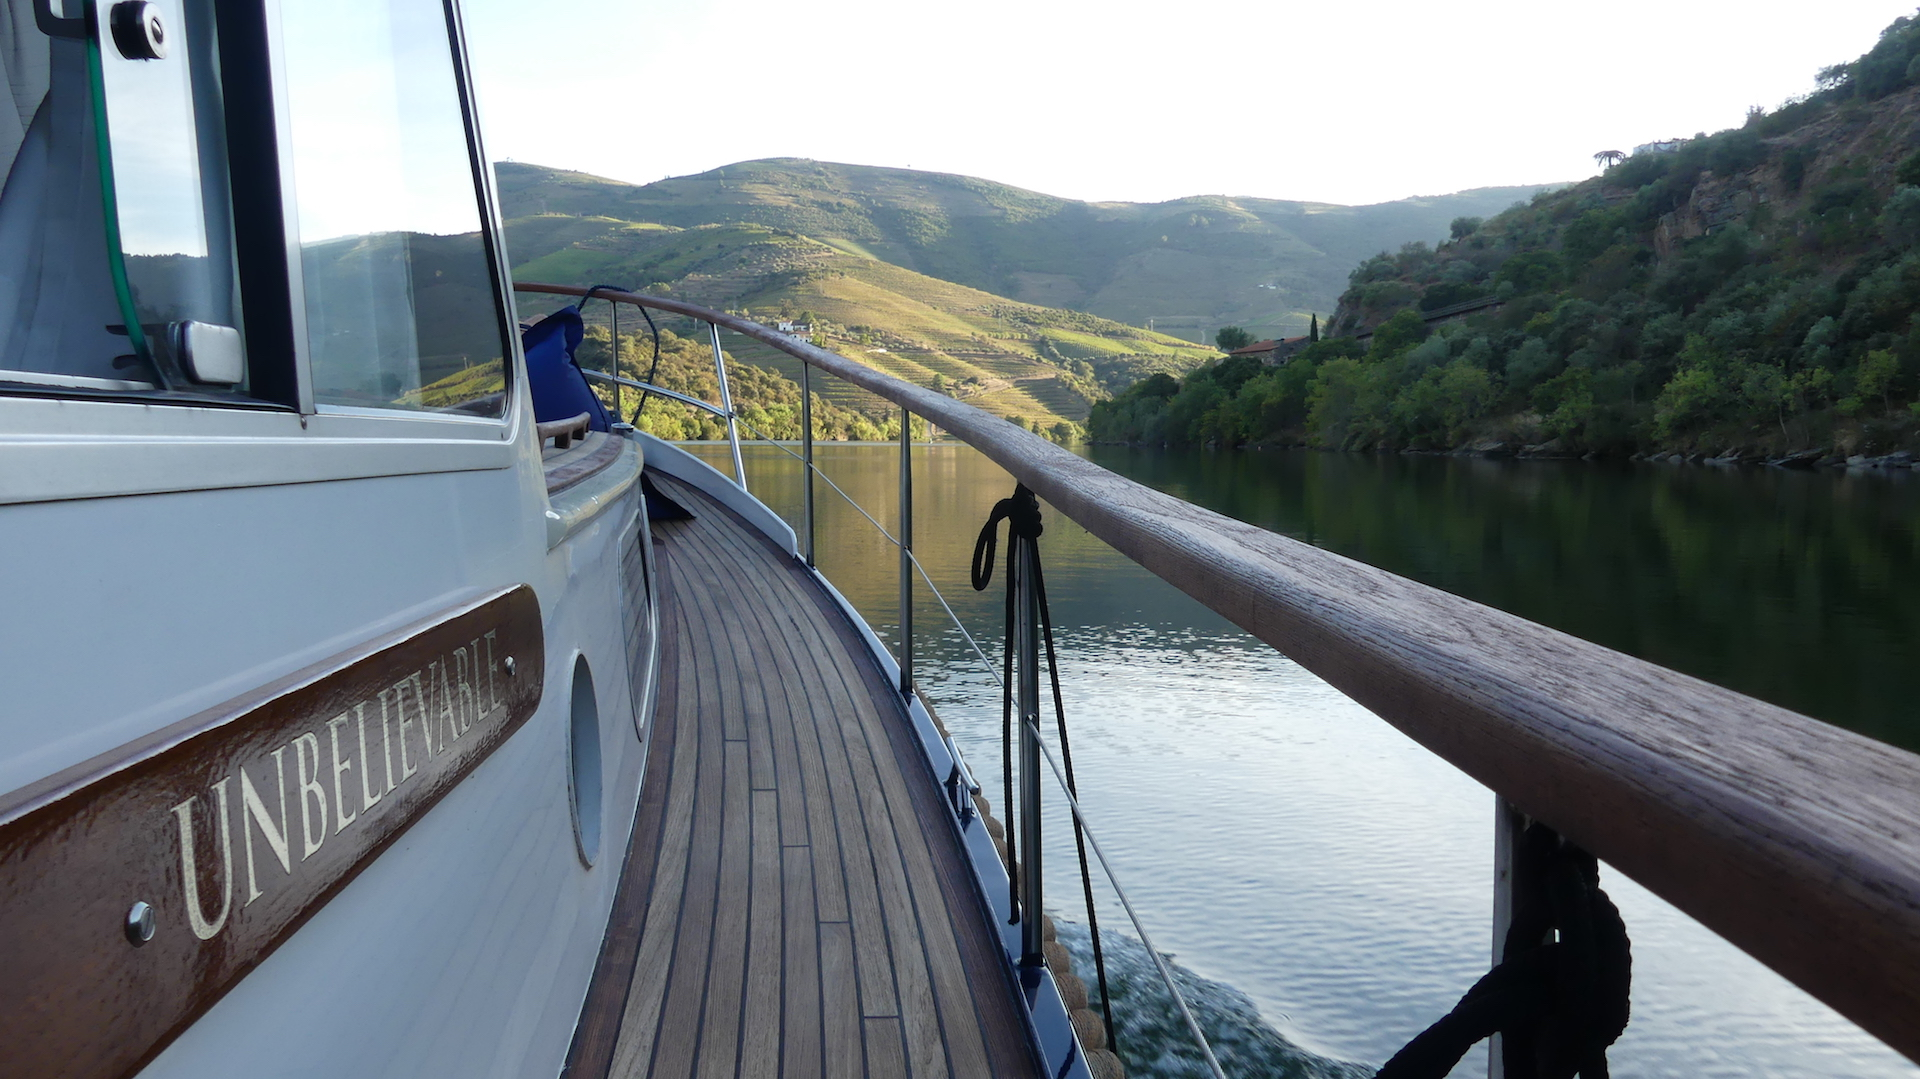 Enjoy the view of the Douro Valley from the river